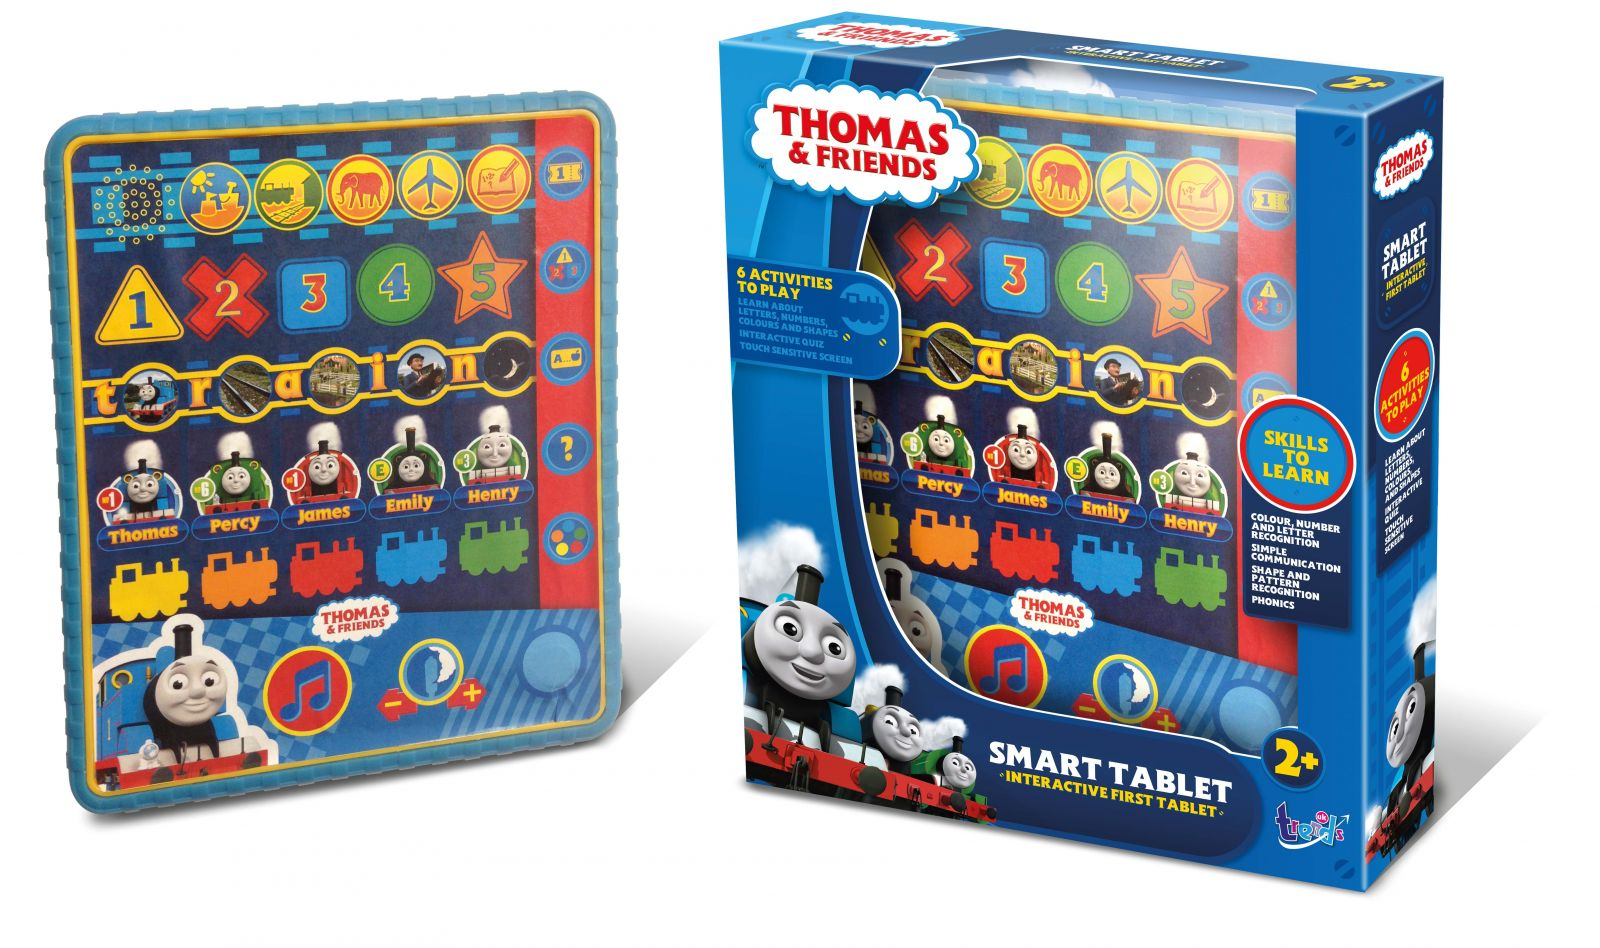 Thomas & Friends Interactive First Smart Tablet Educational Toy